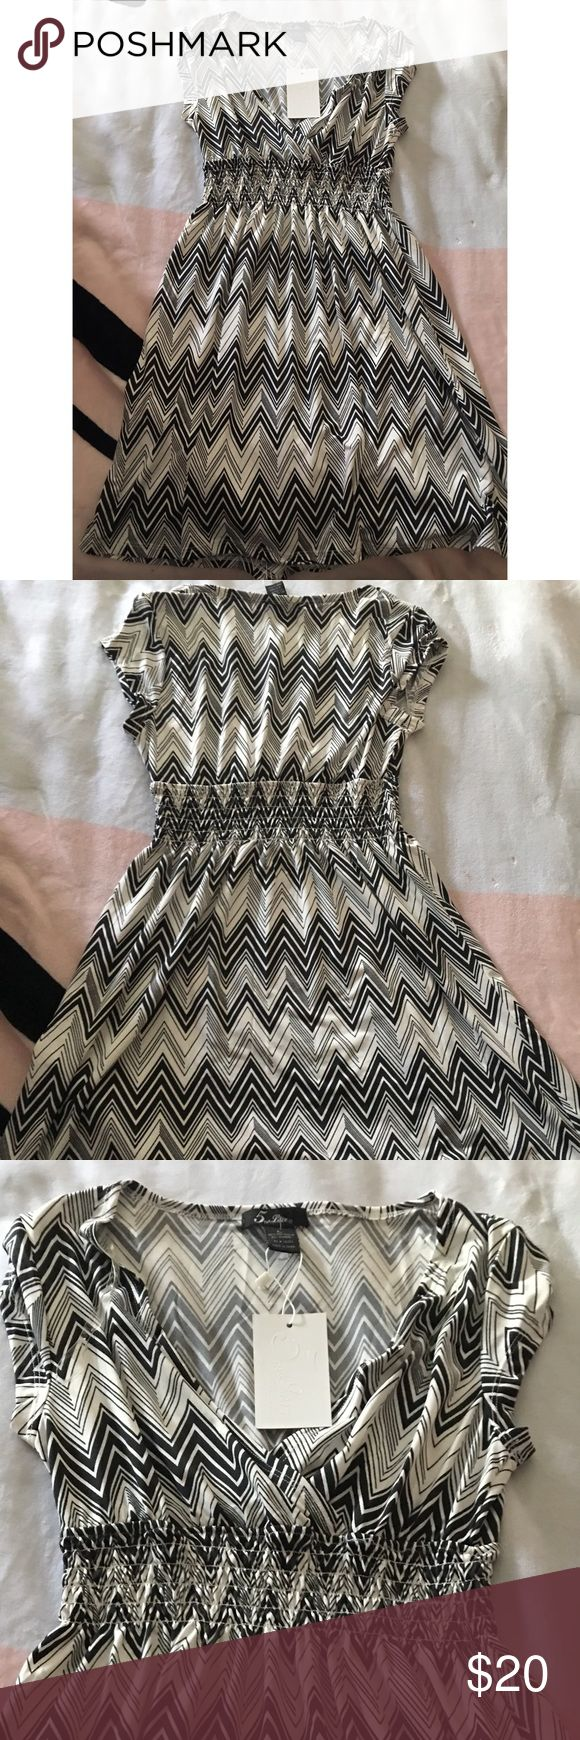 5th & Love Dress This black and white chevron print dress is perfect for any occasion. It has an elastic band that give you a slimming effect. This dress has a lot of stretch to it. 5th & Love Dresses Midi